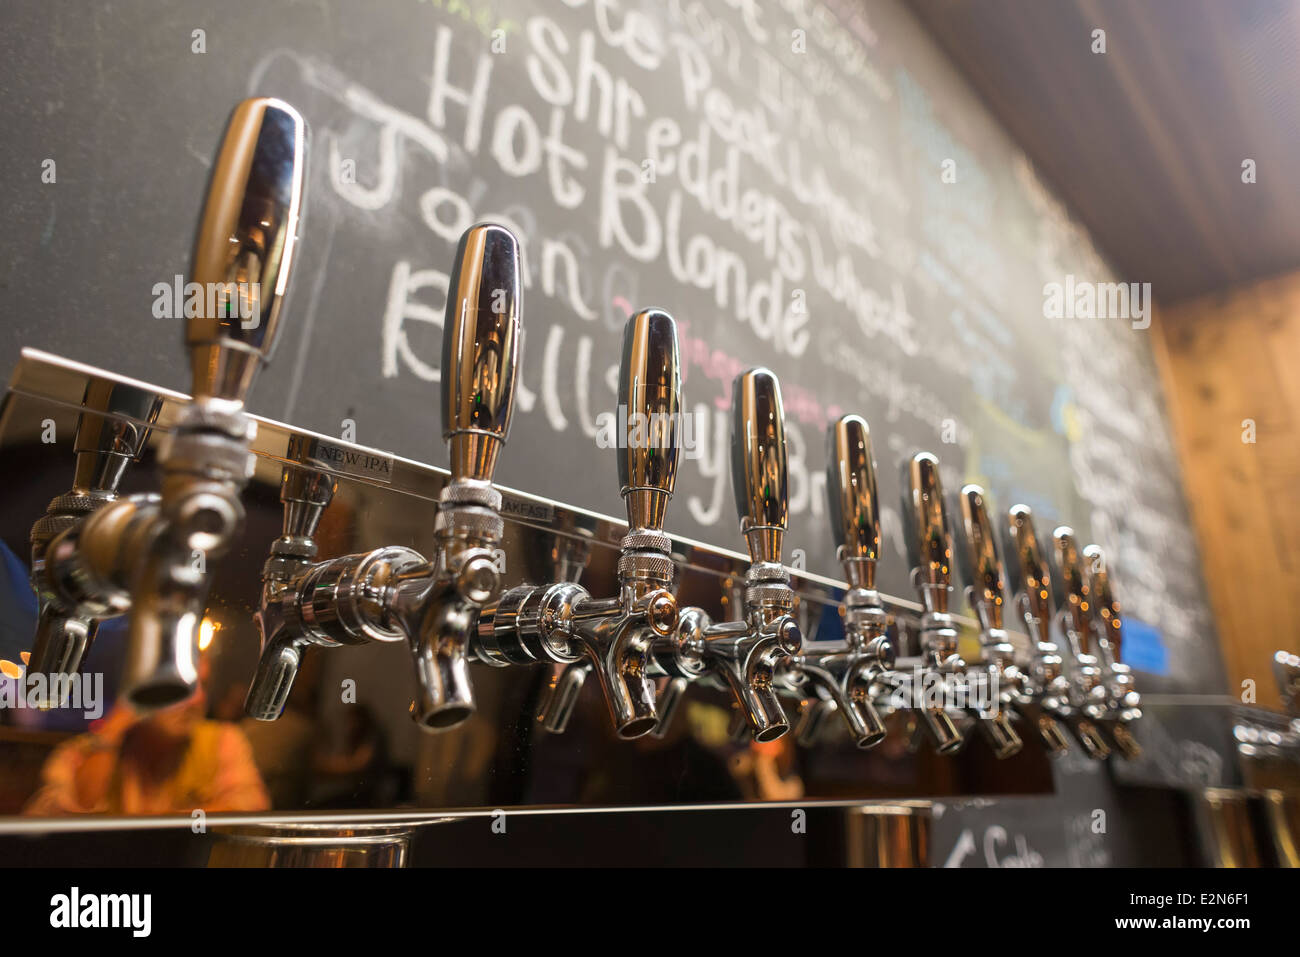 Beer Taps Stock Photos & Beer Taps Stock Images - Alamy